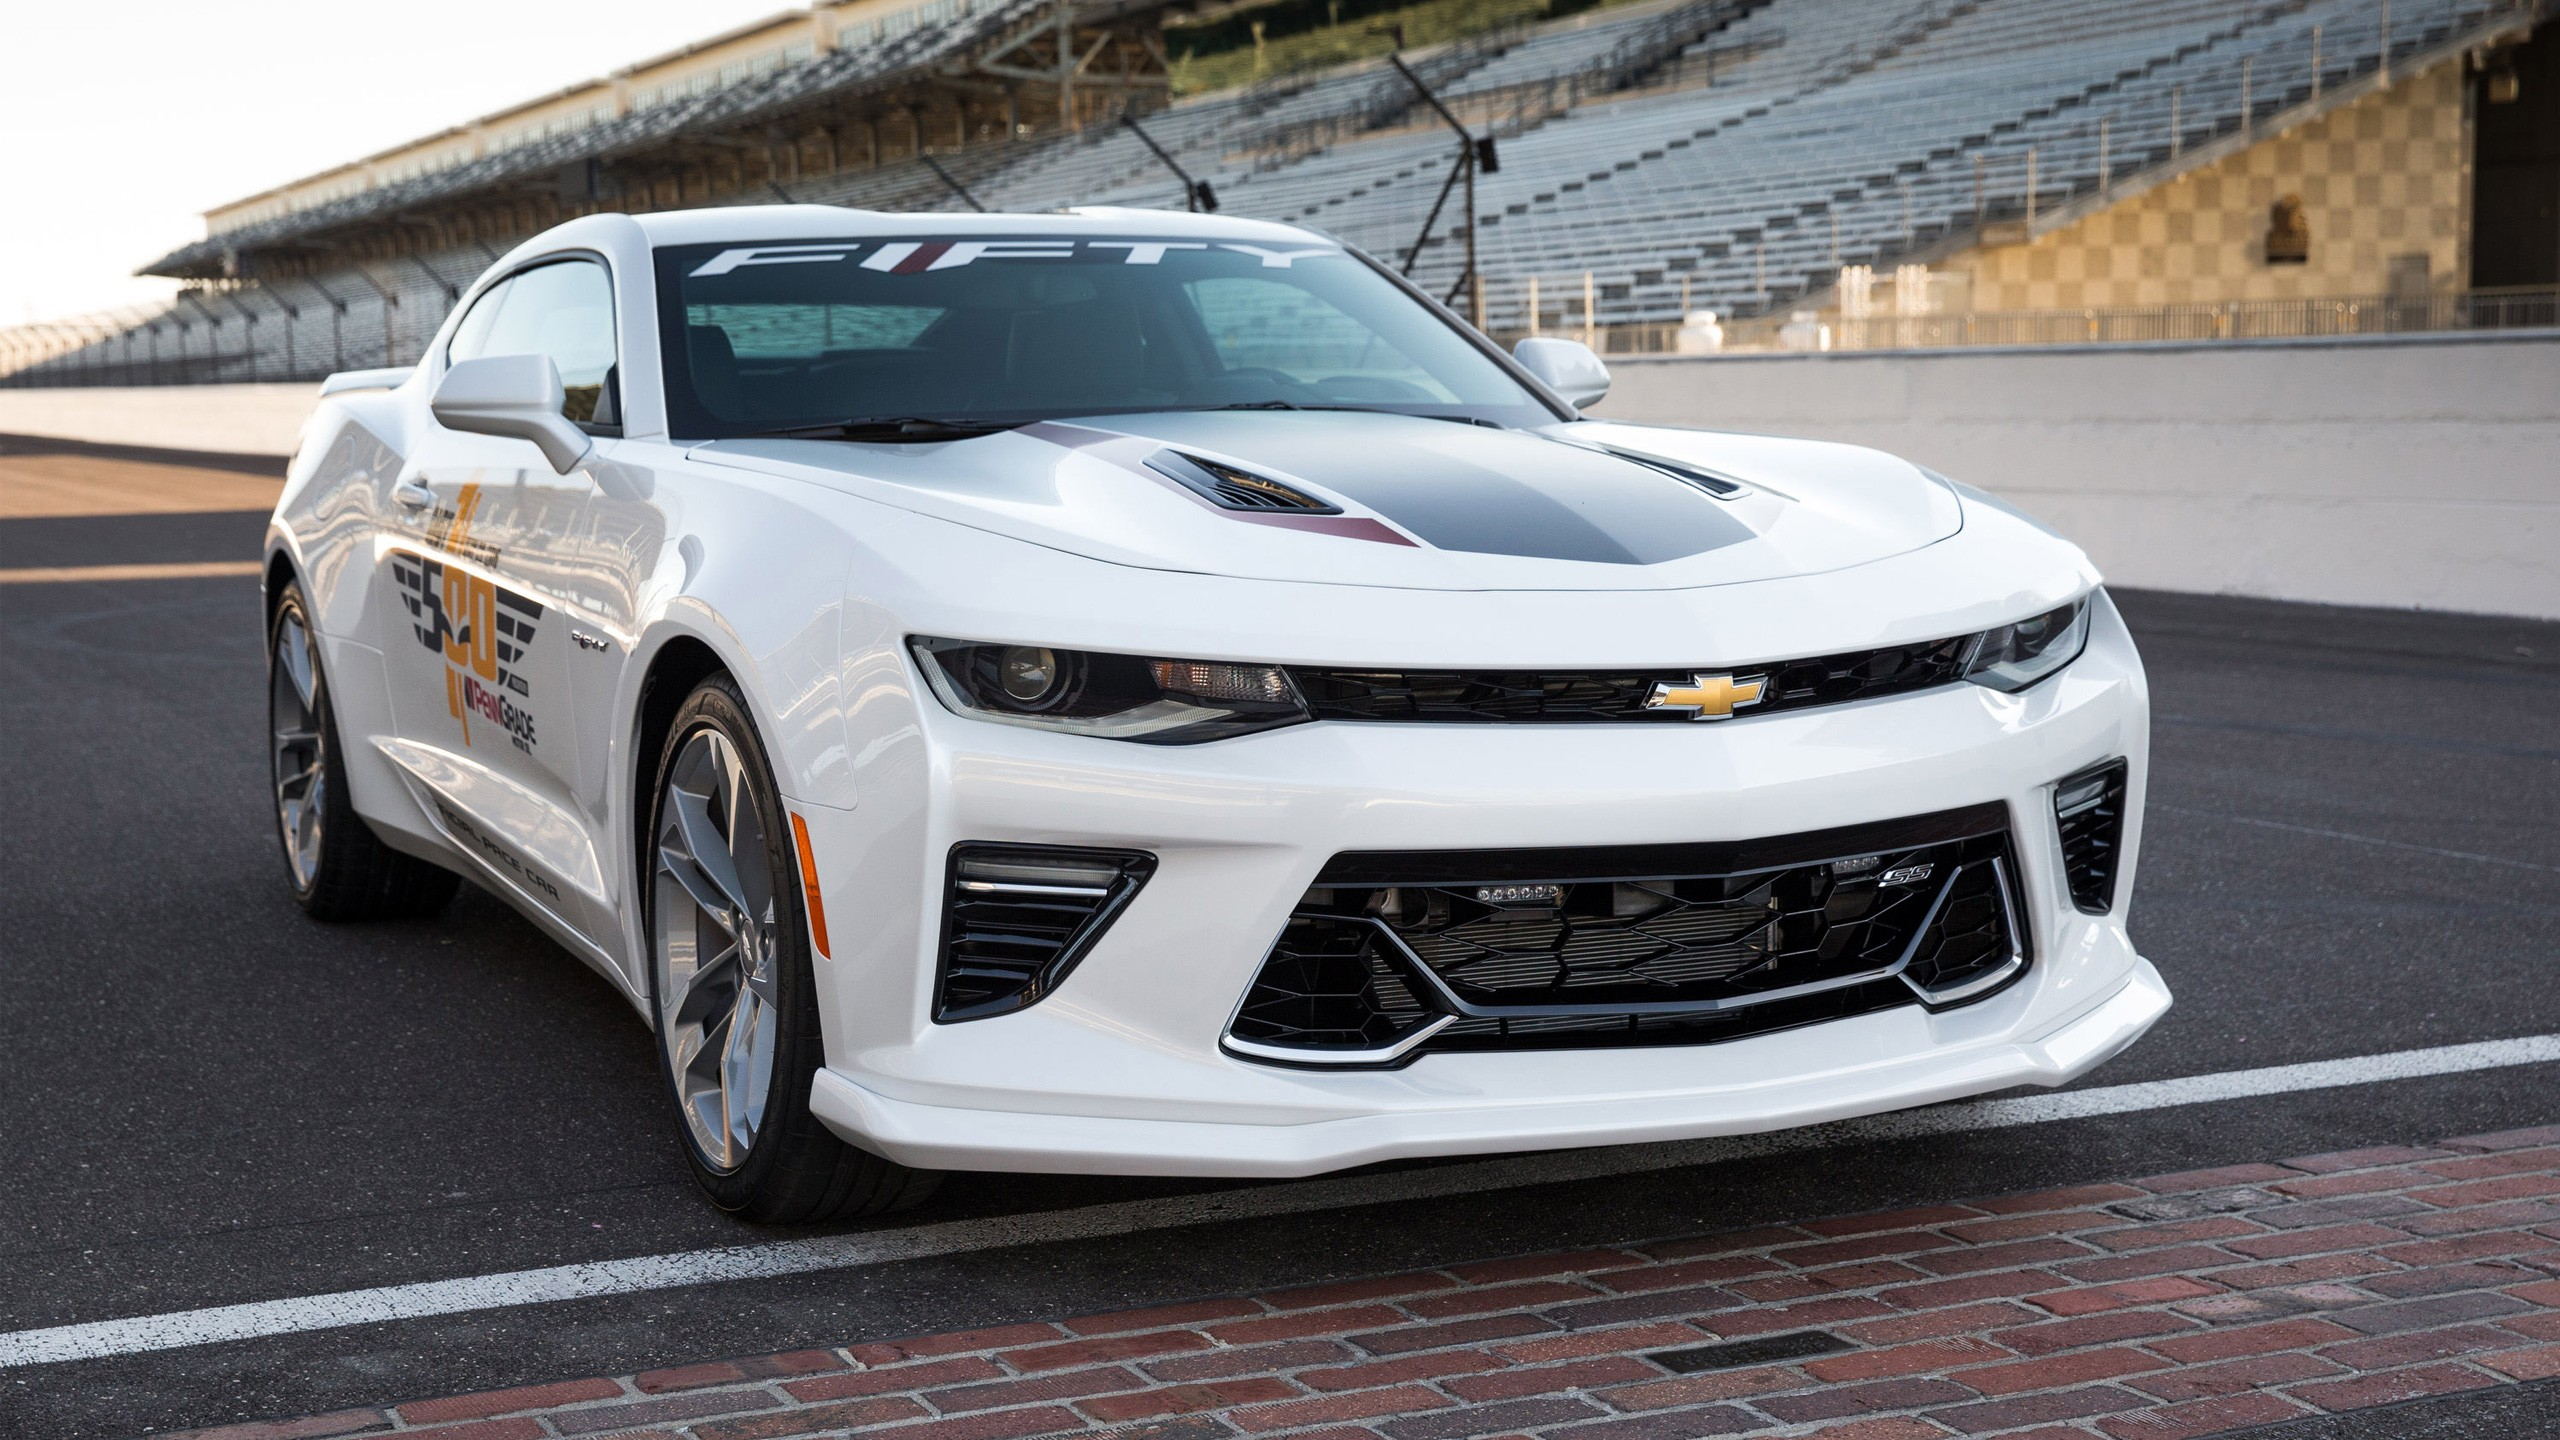 2017 Chevrolet Camaro 50th Anniversary Edition Wallpaper Hd Car | 2017 ...